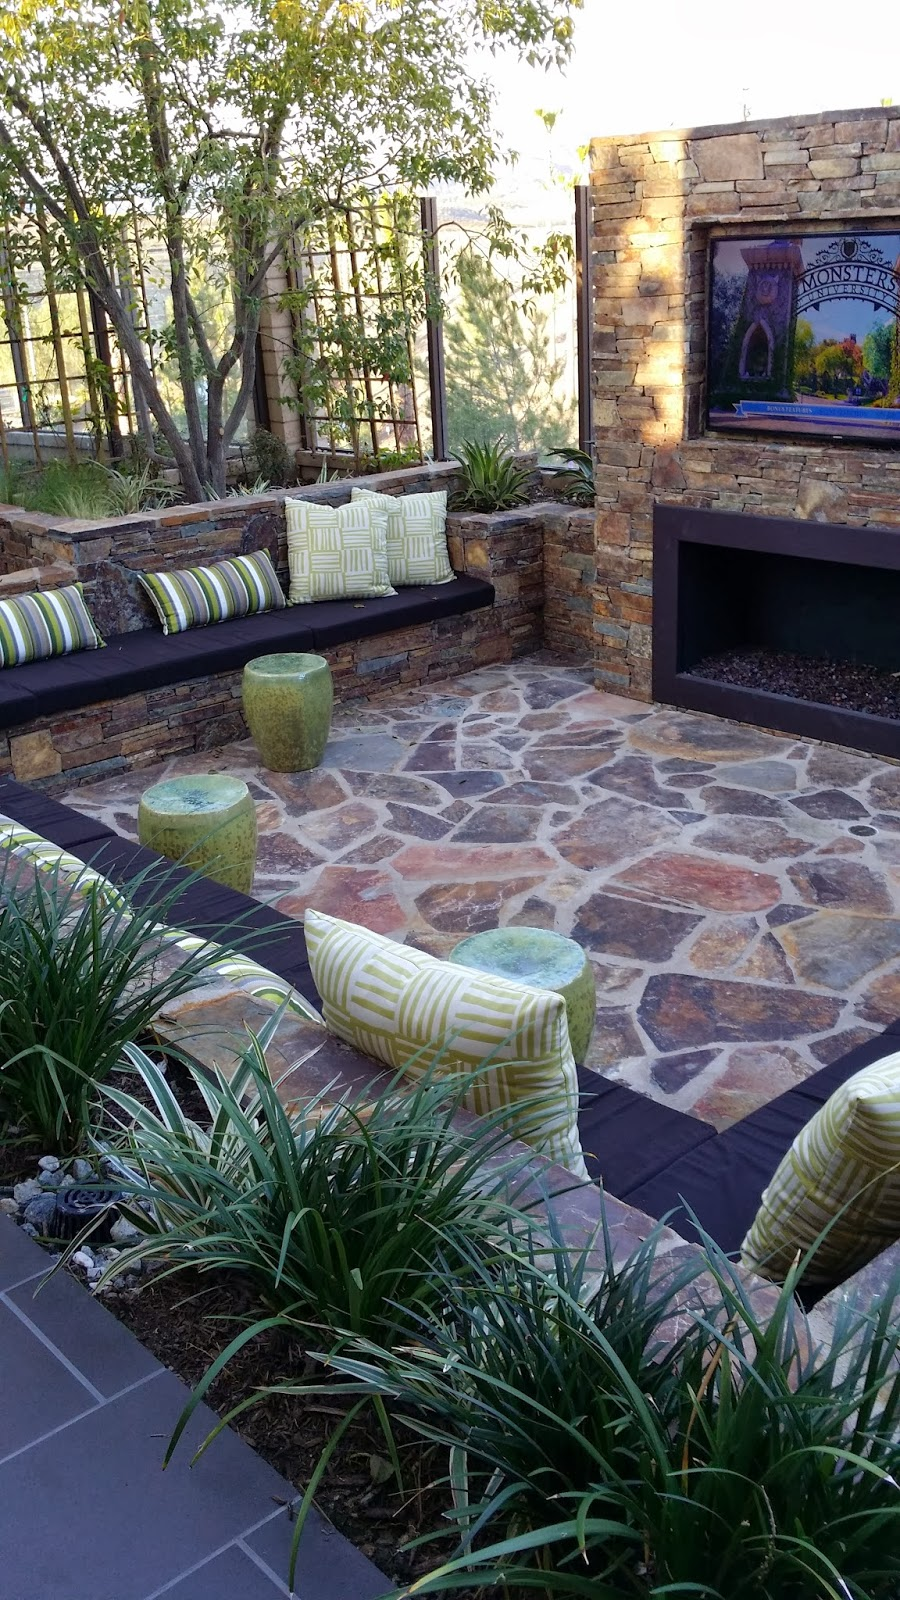 TG interiors: Model Homes in Orange County and Shopping on Small Backyard Entertainment Area Ideas id=60273